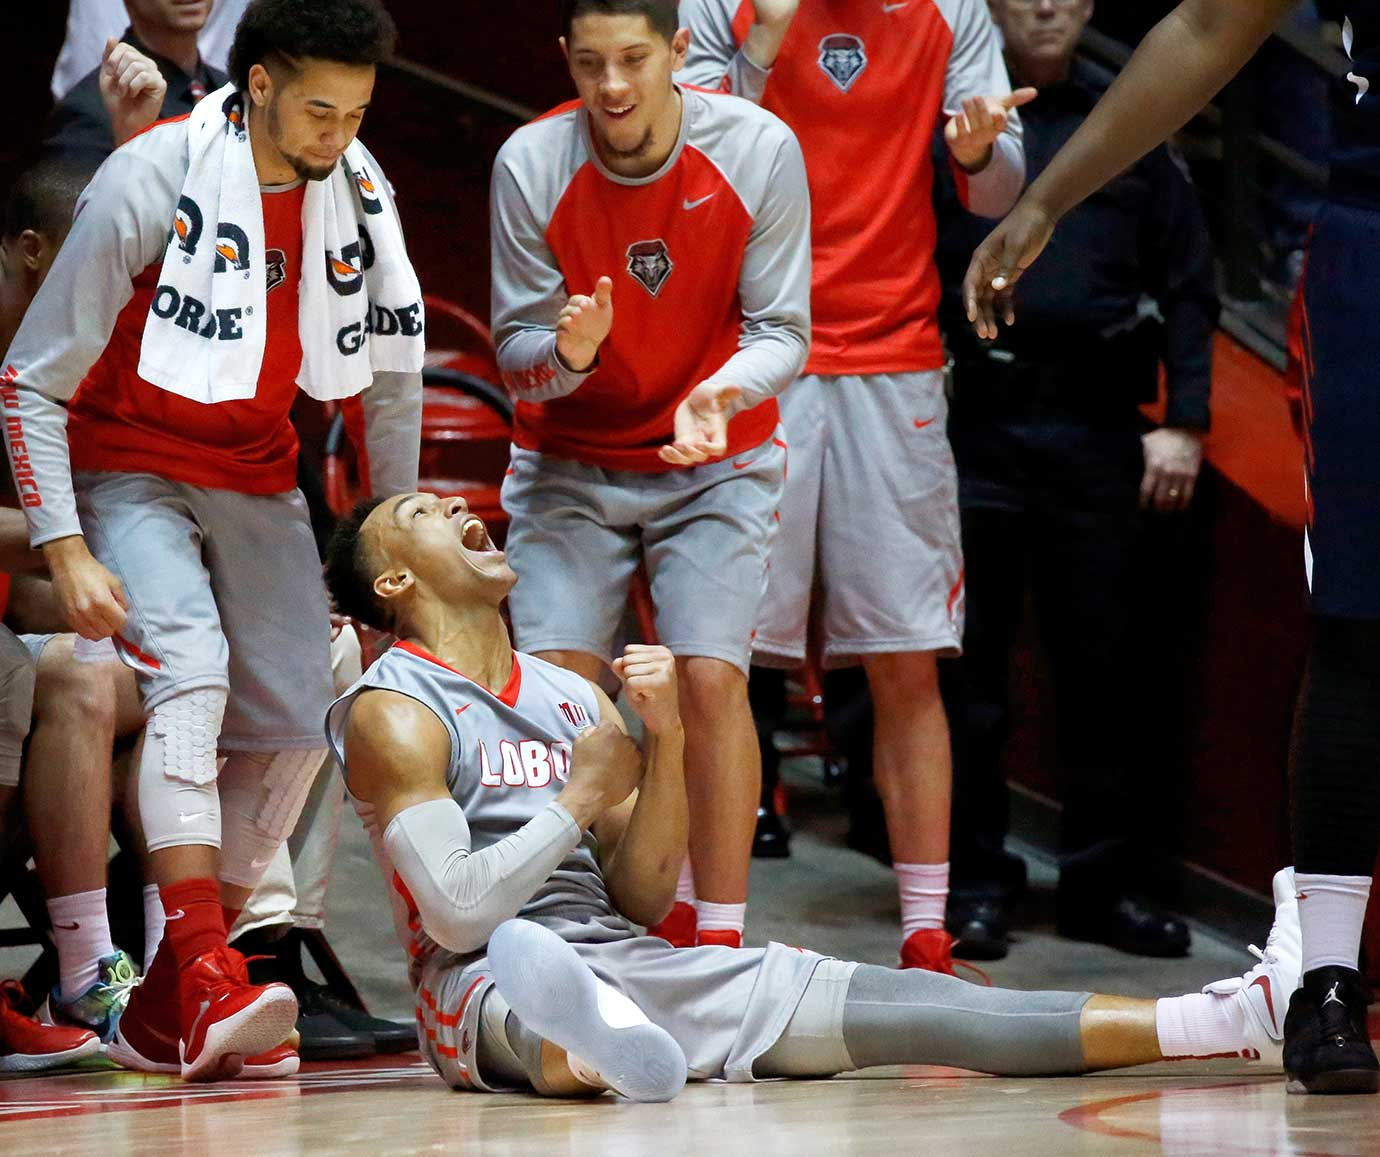 New Mexico's Elijah Brown reacts after making a shot against Fresno State.